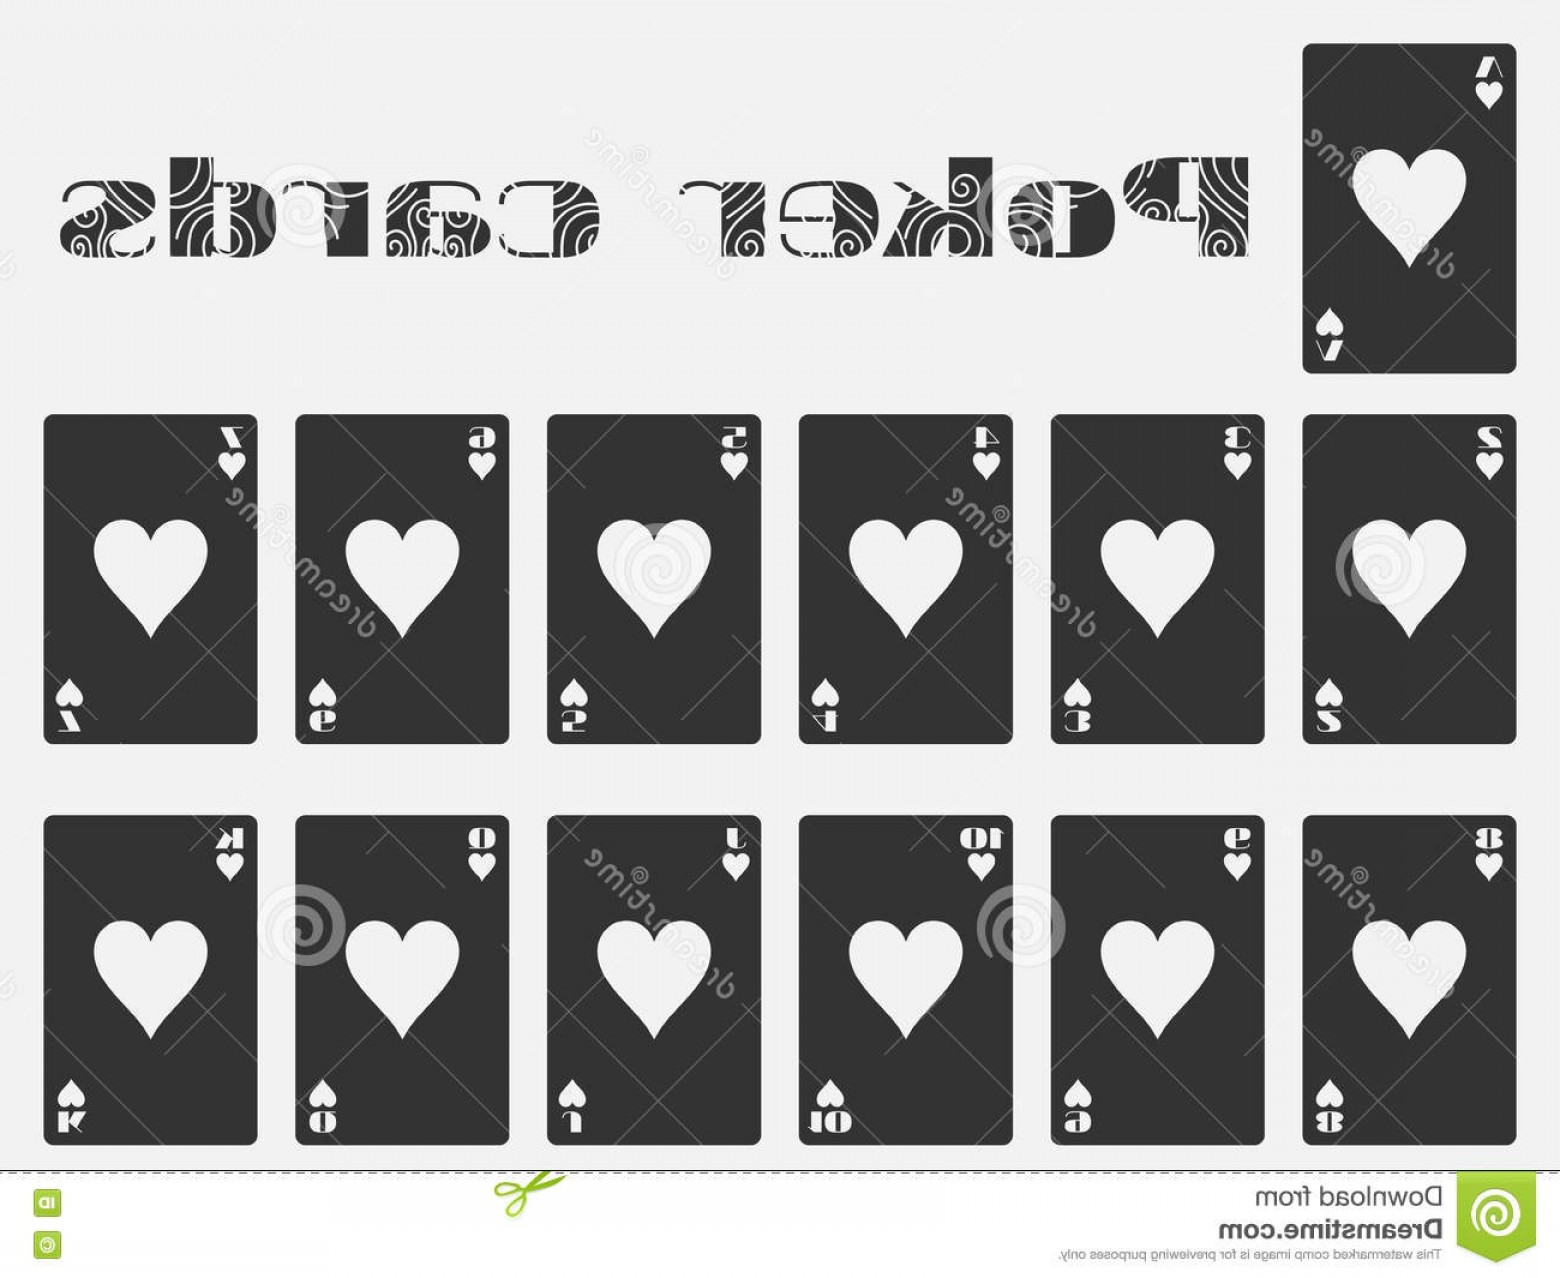 10 Playing Card Vector: Stock Illustration Poker Cards Deck Cards Cards Hearts Suit Isolated Playing Card Vector Illustration Image